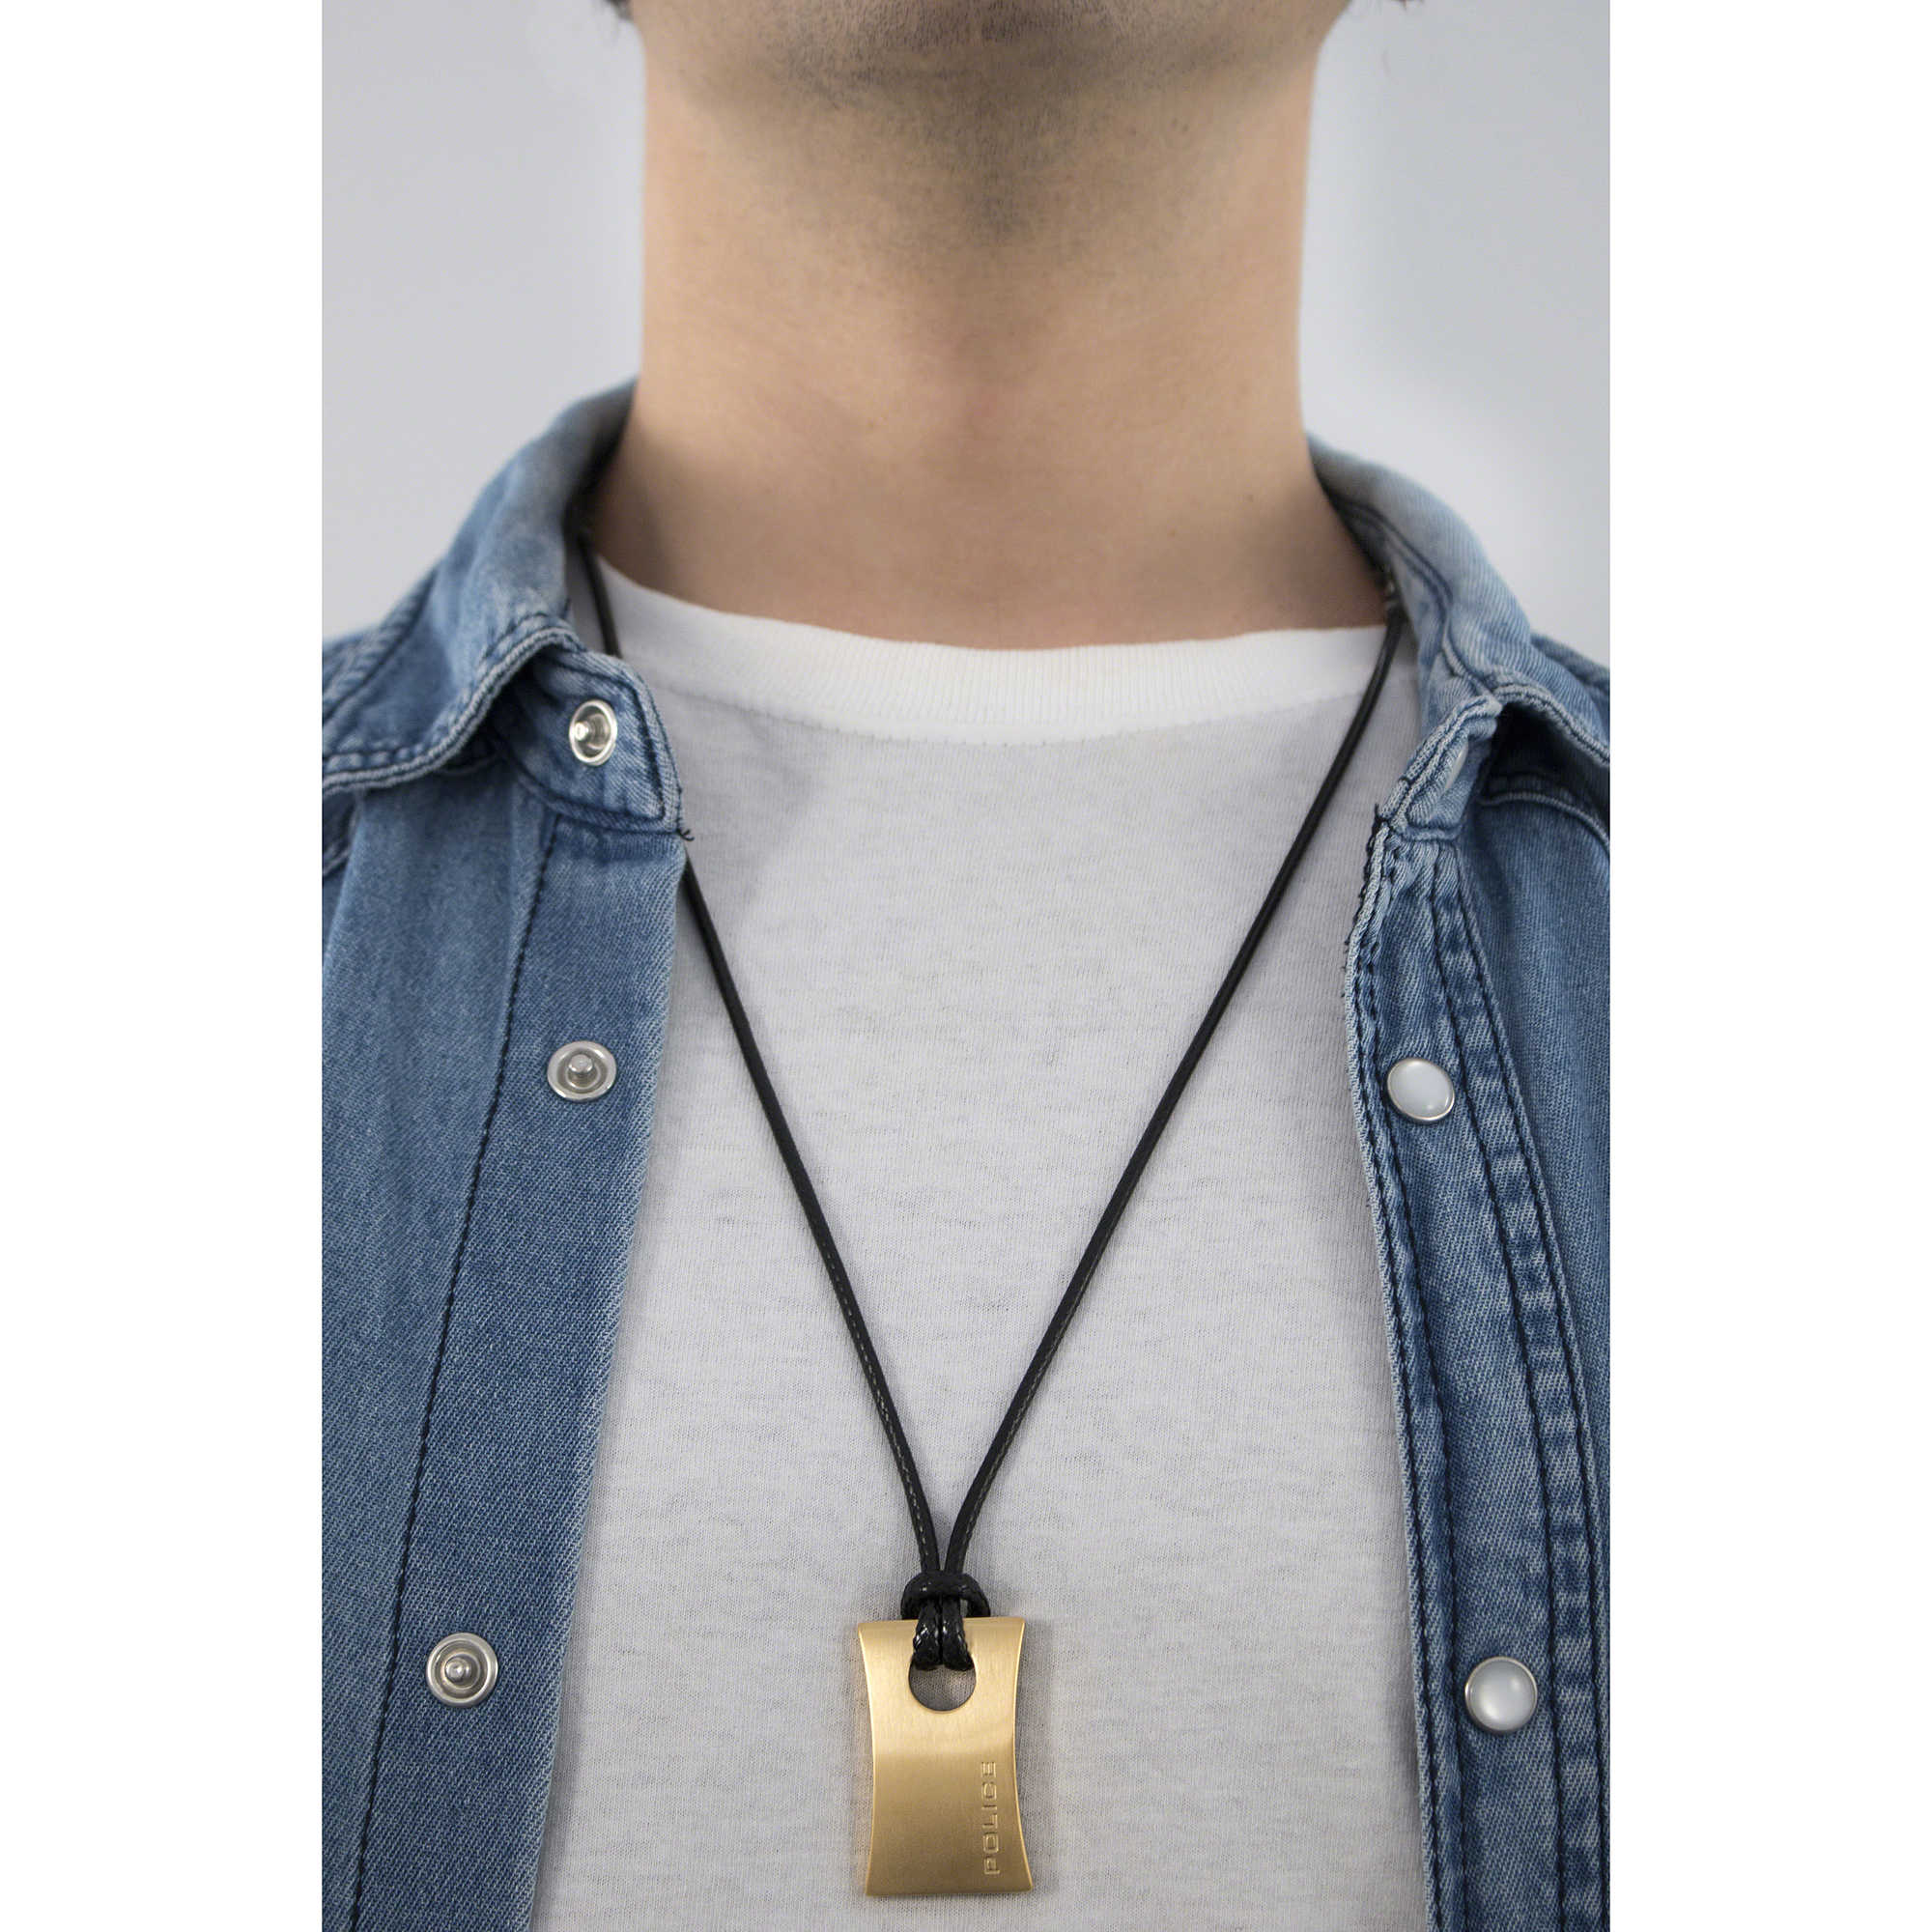 Necklace man jewellery police carver s14agn02p necklaces police zoom aloadofball Gallery